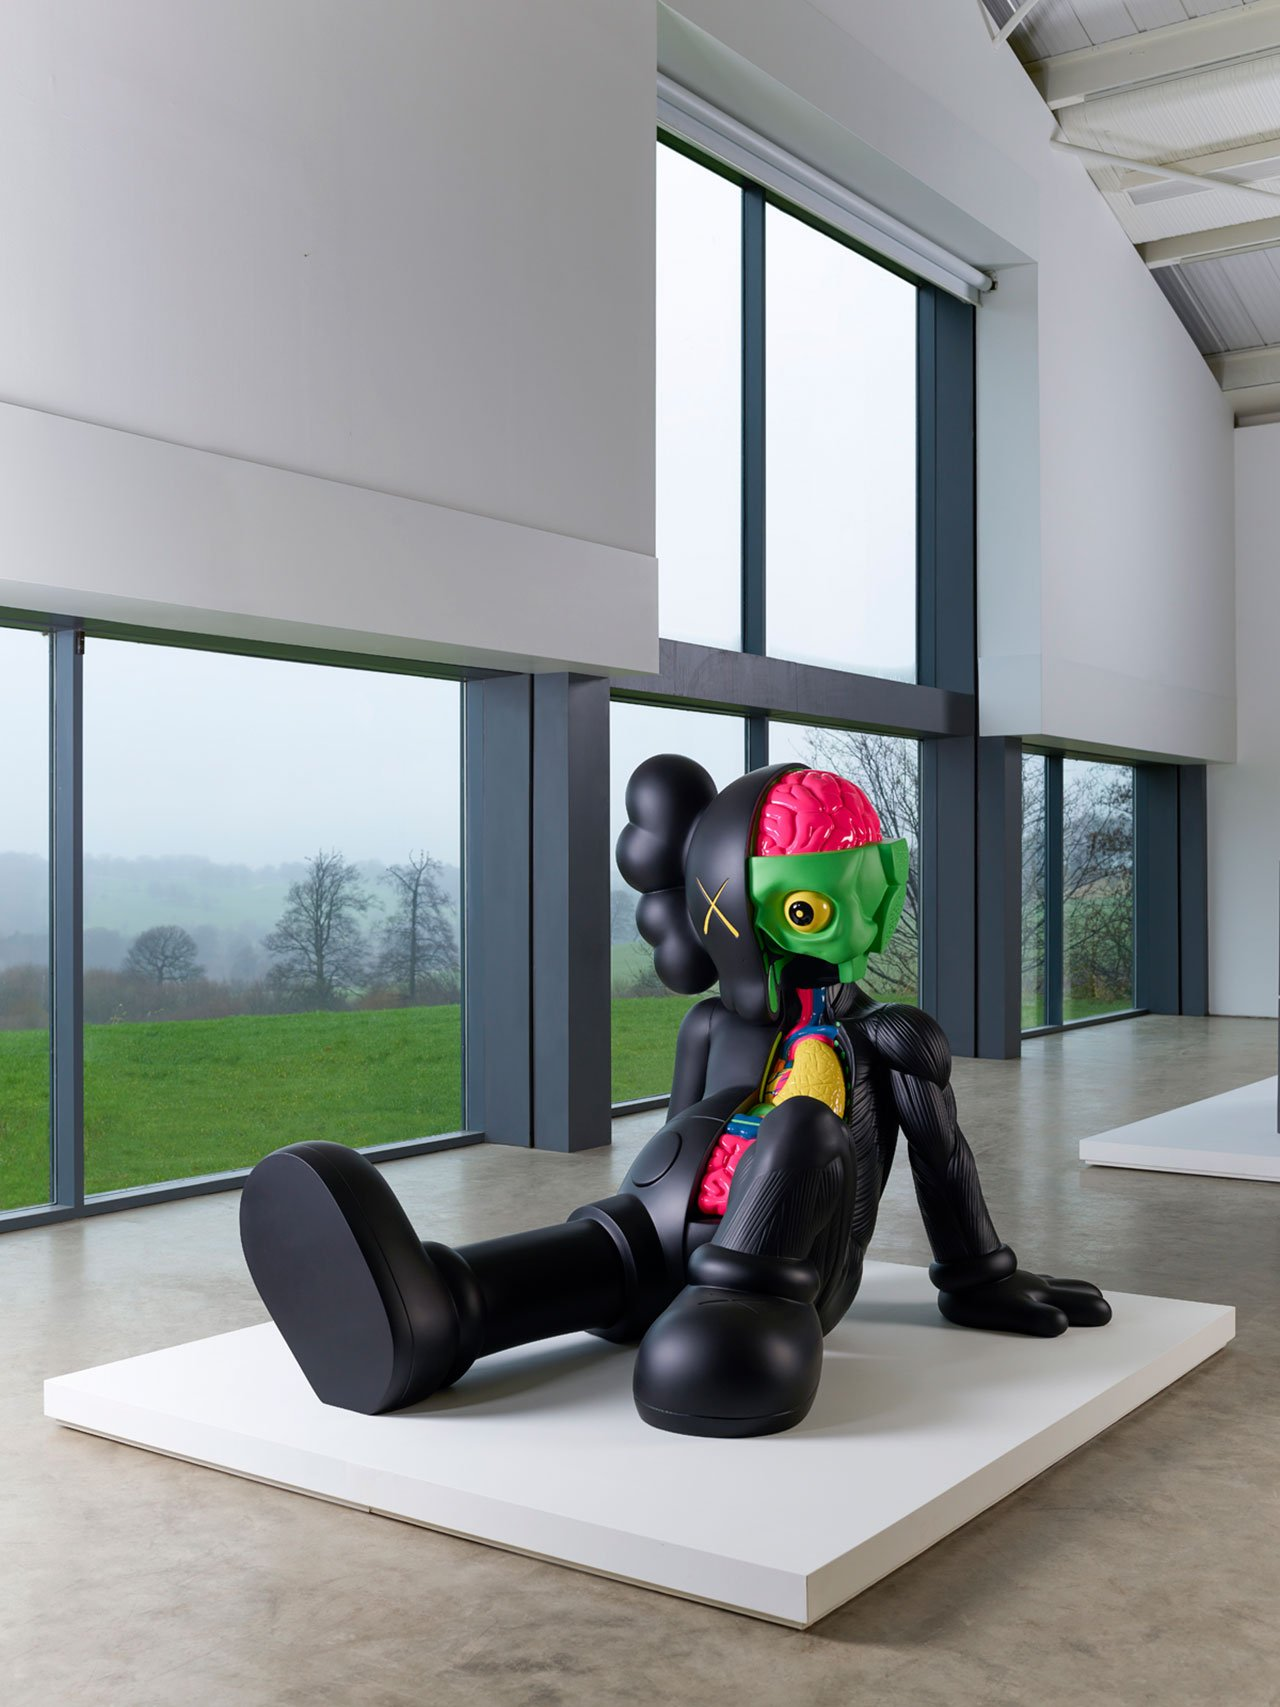 Companion (Resting Place), 2013. Courtesy the artist and YSP Painted aluminium H153.7cm x W160cm x D203.2. Photo © Jonty Wilde.